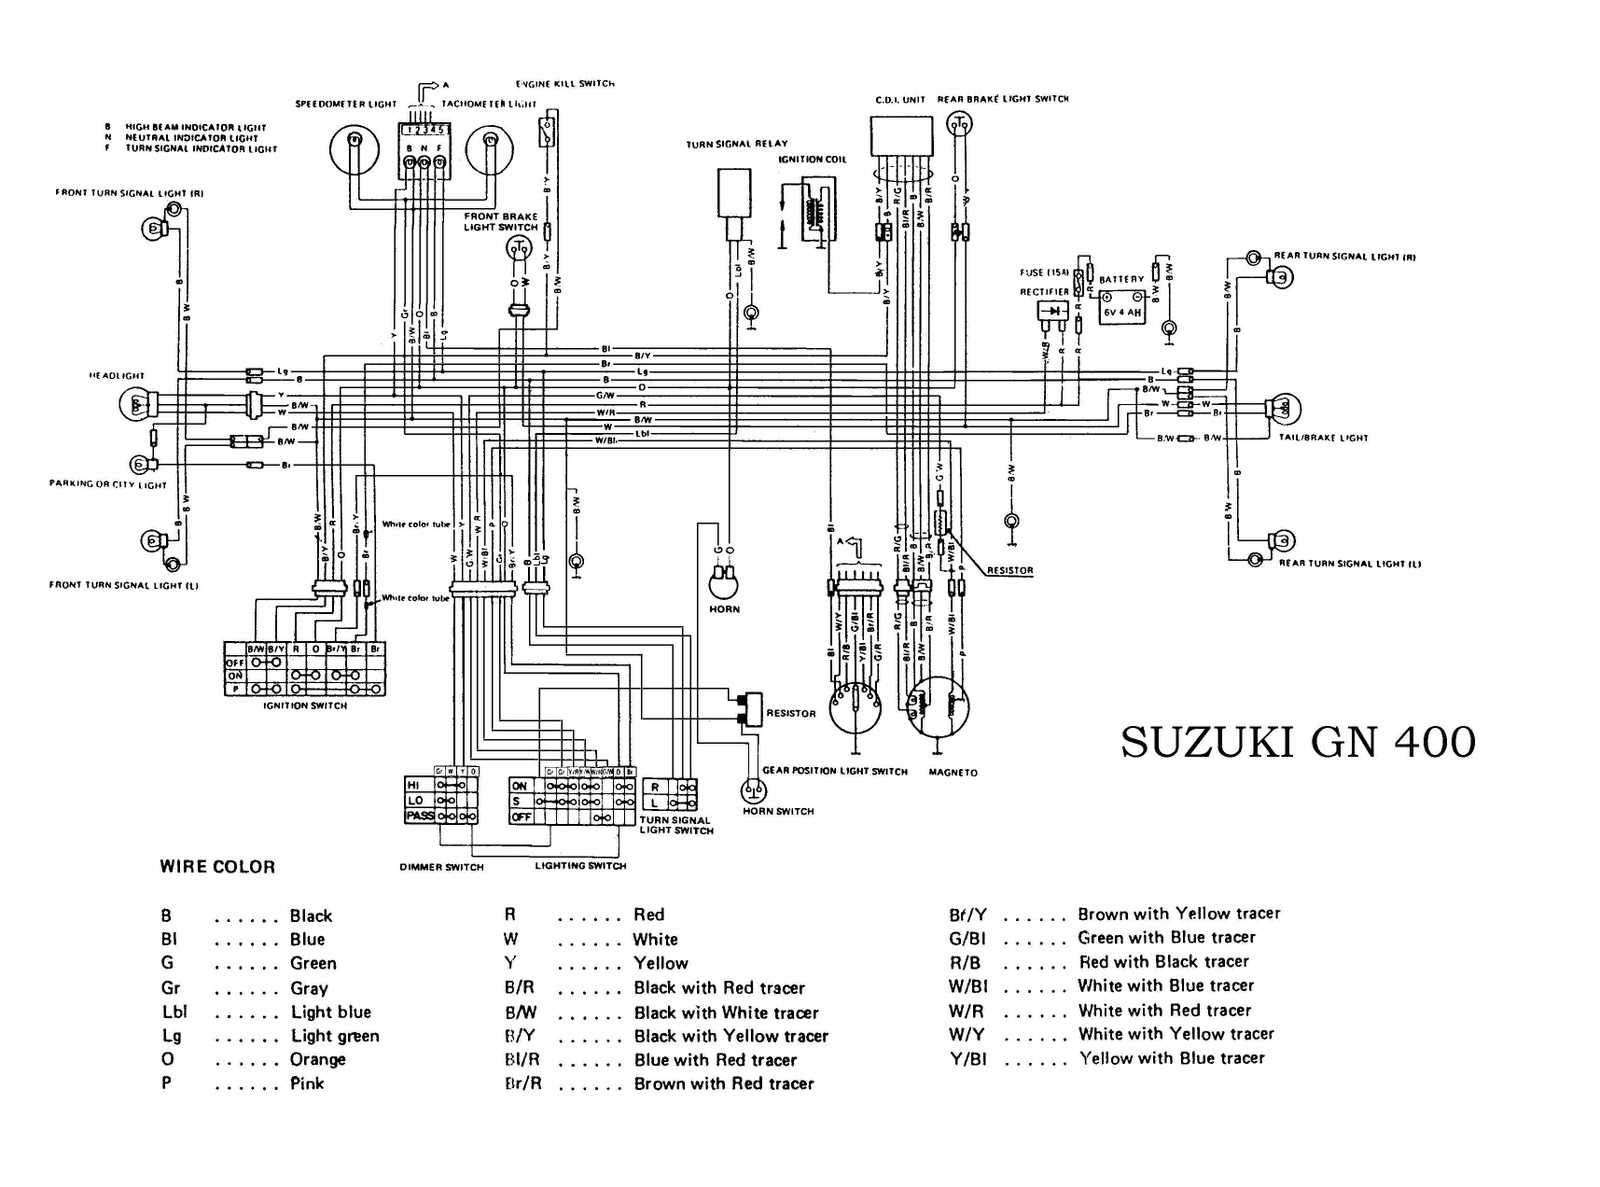 [DIAGRAM_09CH]  E1896 Suzuki Lets 2 Wiring Diagram | Wiring Library | Desktop Wiring Schematic |  | Wiring Library